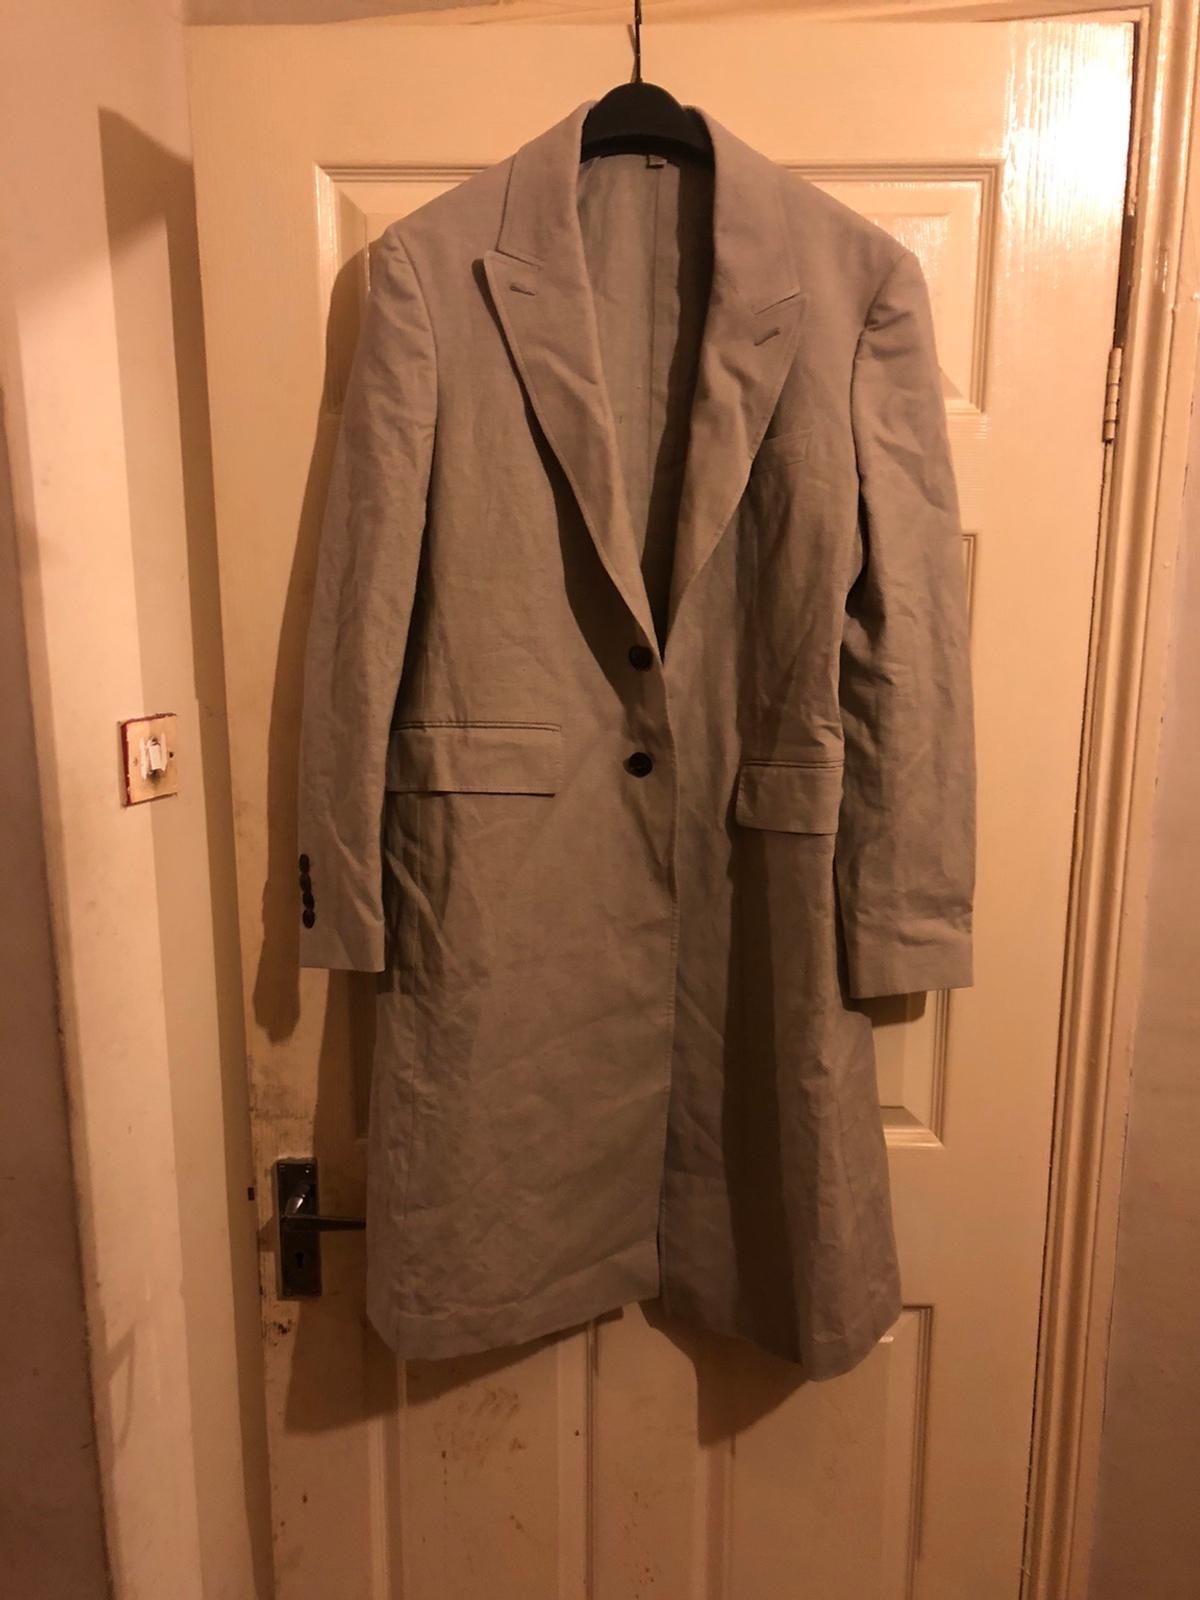 Men's Burberry coat size 50R in really good condition. £50ono collection from Battersea